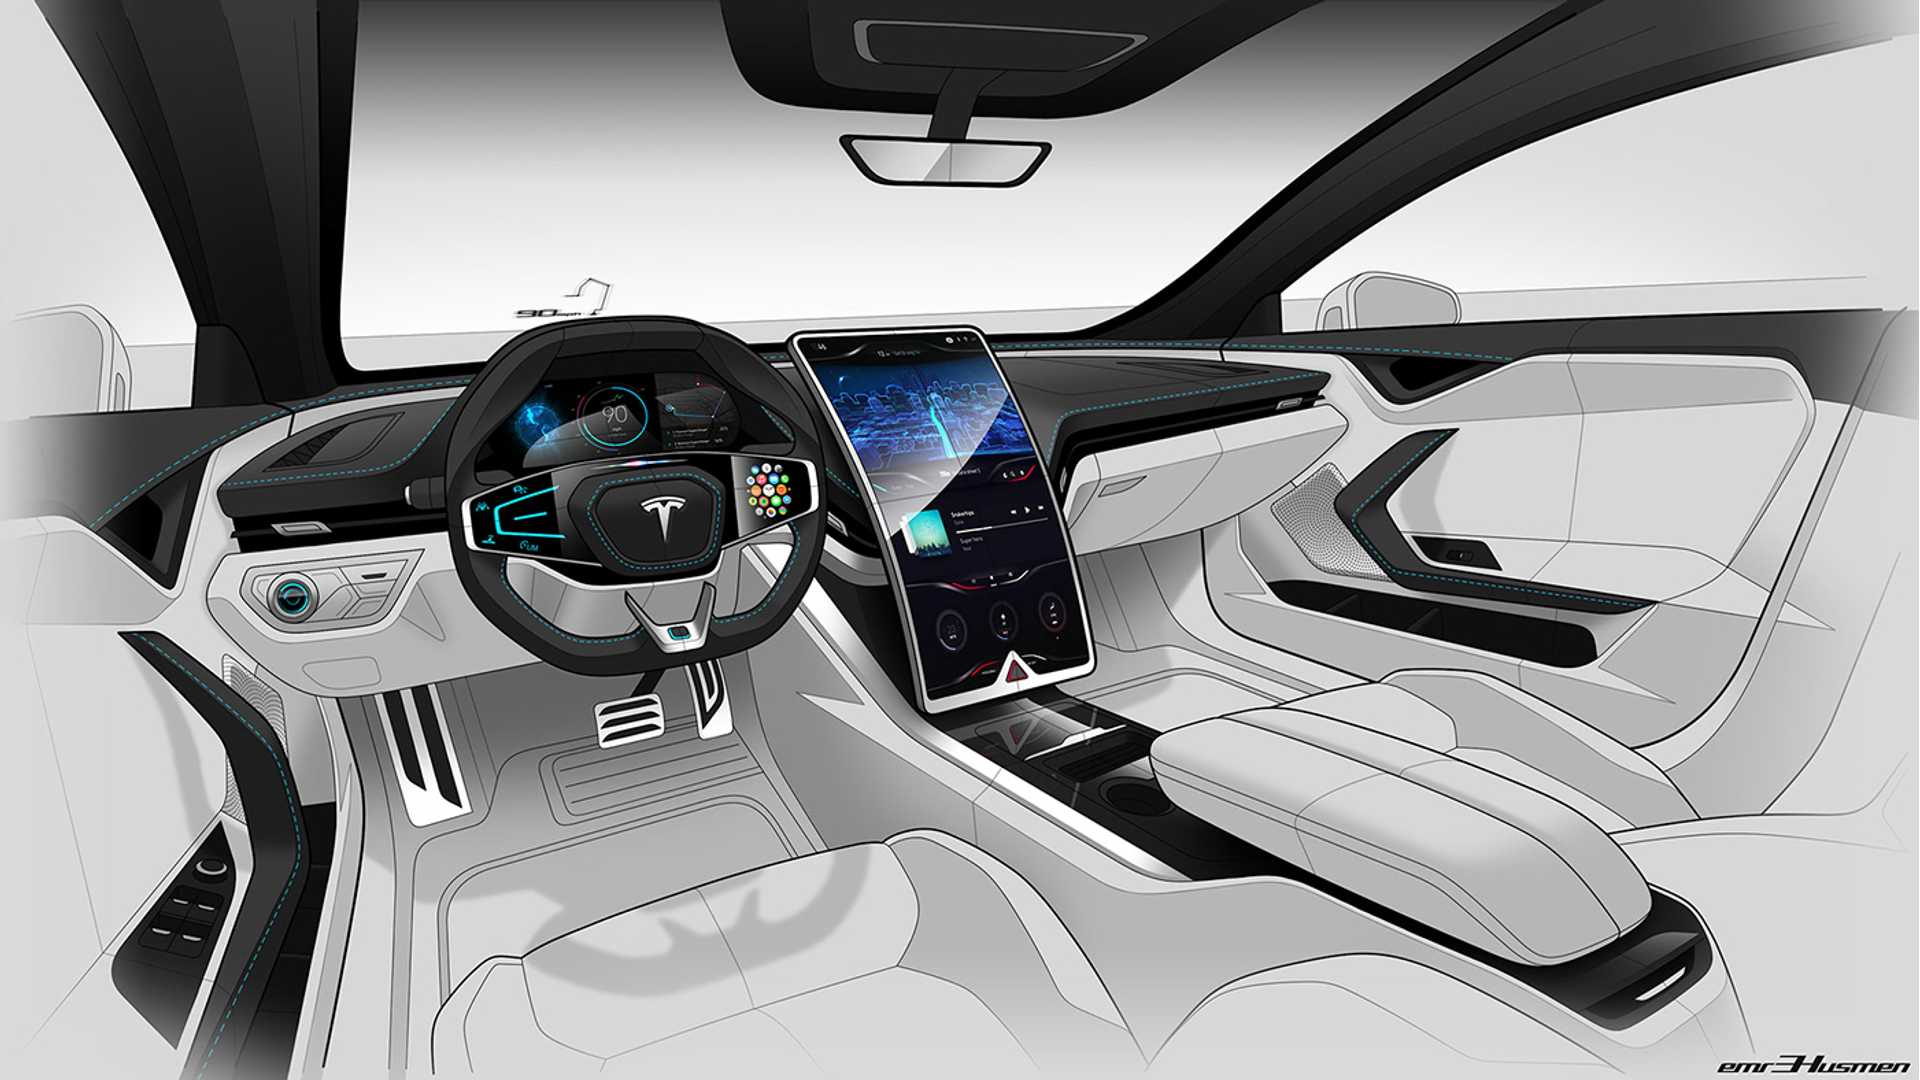 Tesla Model S Interior >> Check Out This Wild Tesla Model S Interior Render With Curvy